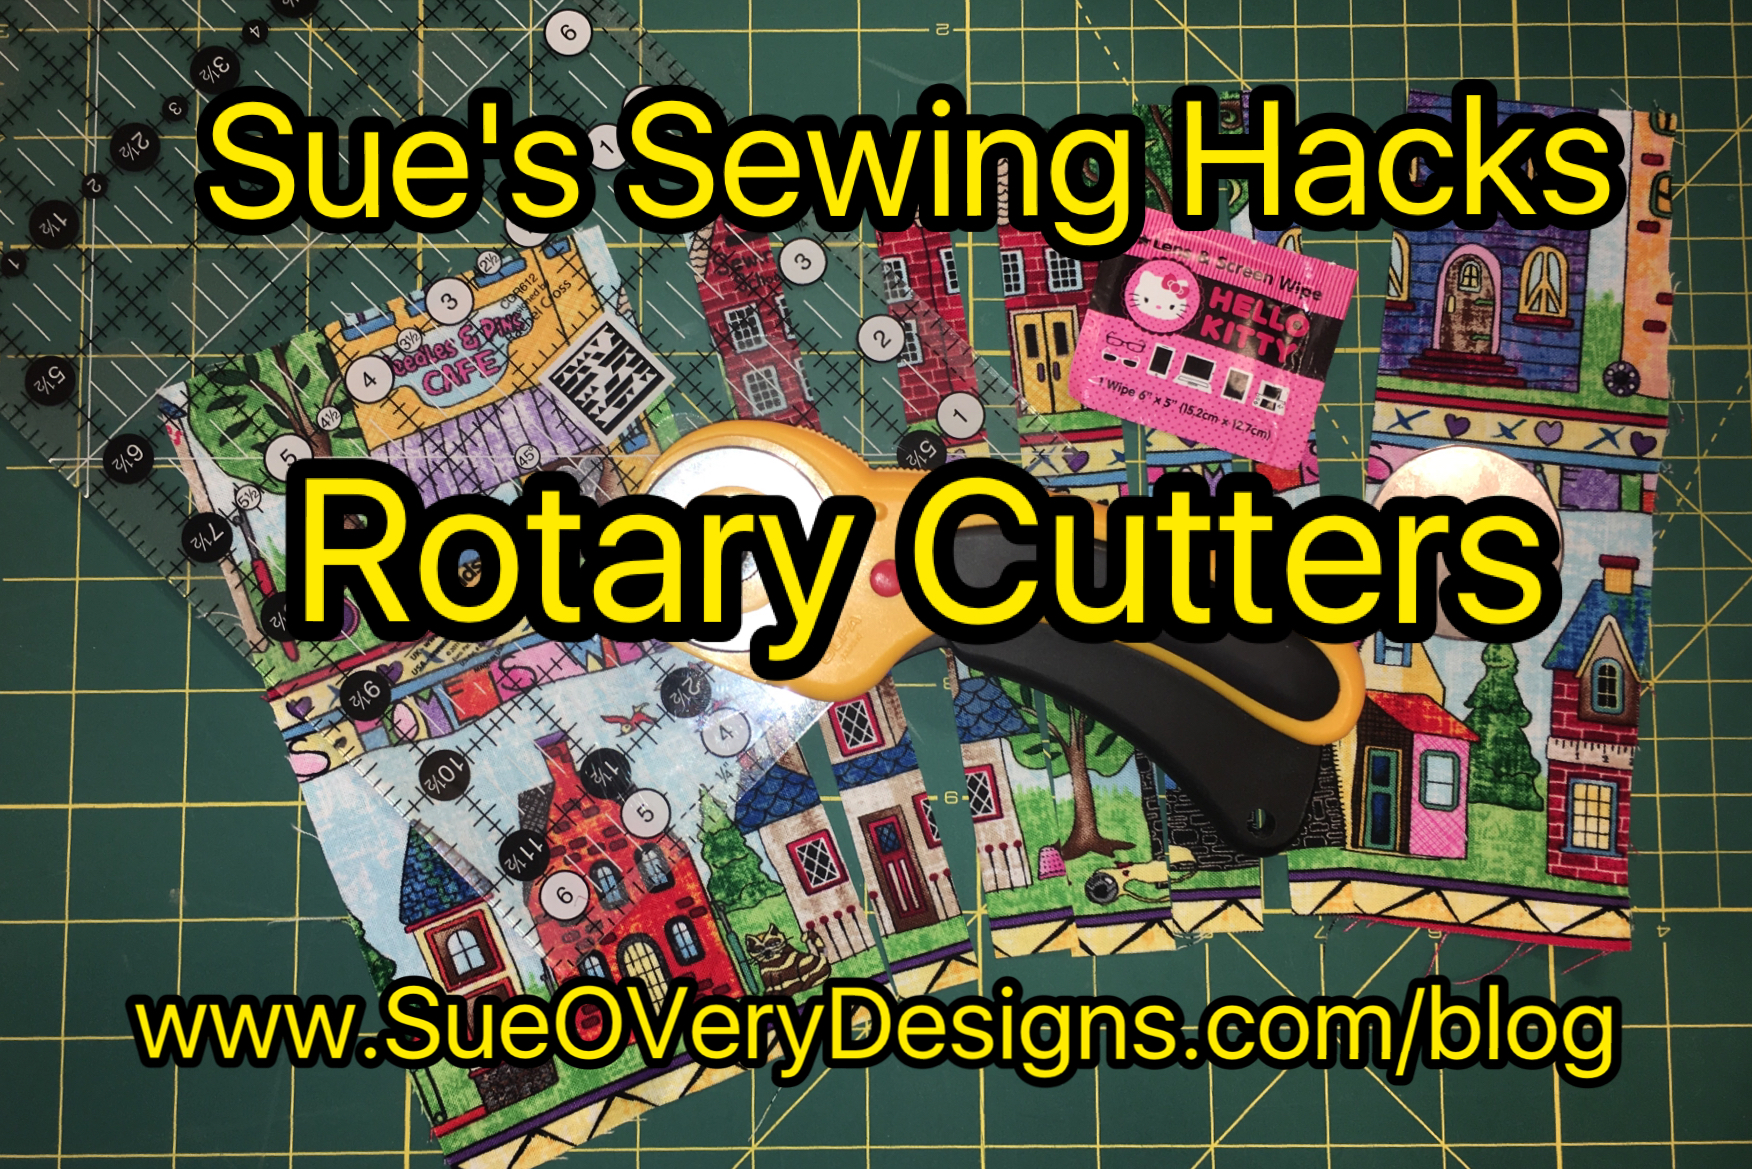 Rotary Cutter How To Clean Sue Overy Designs